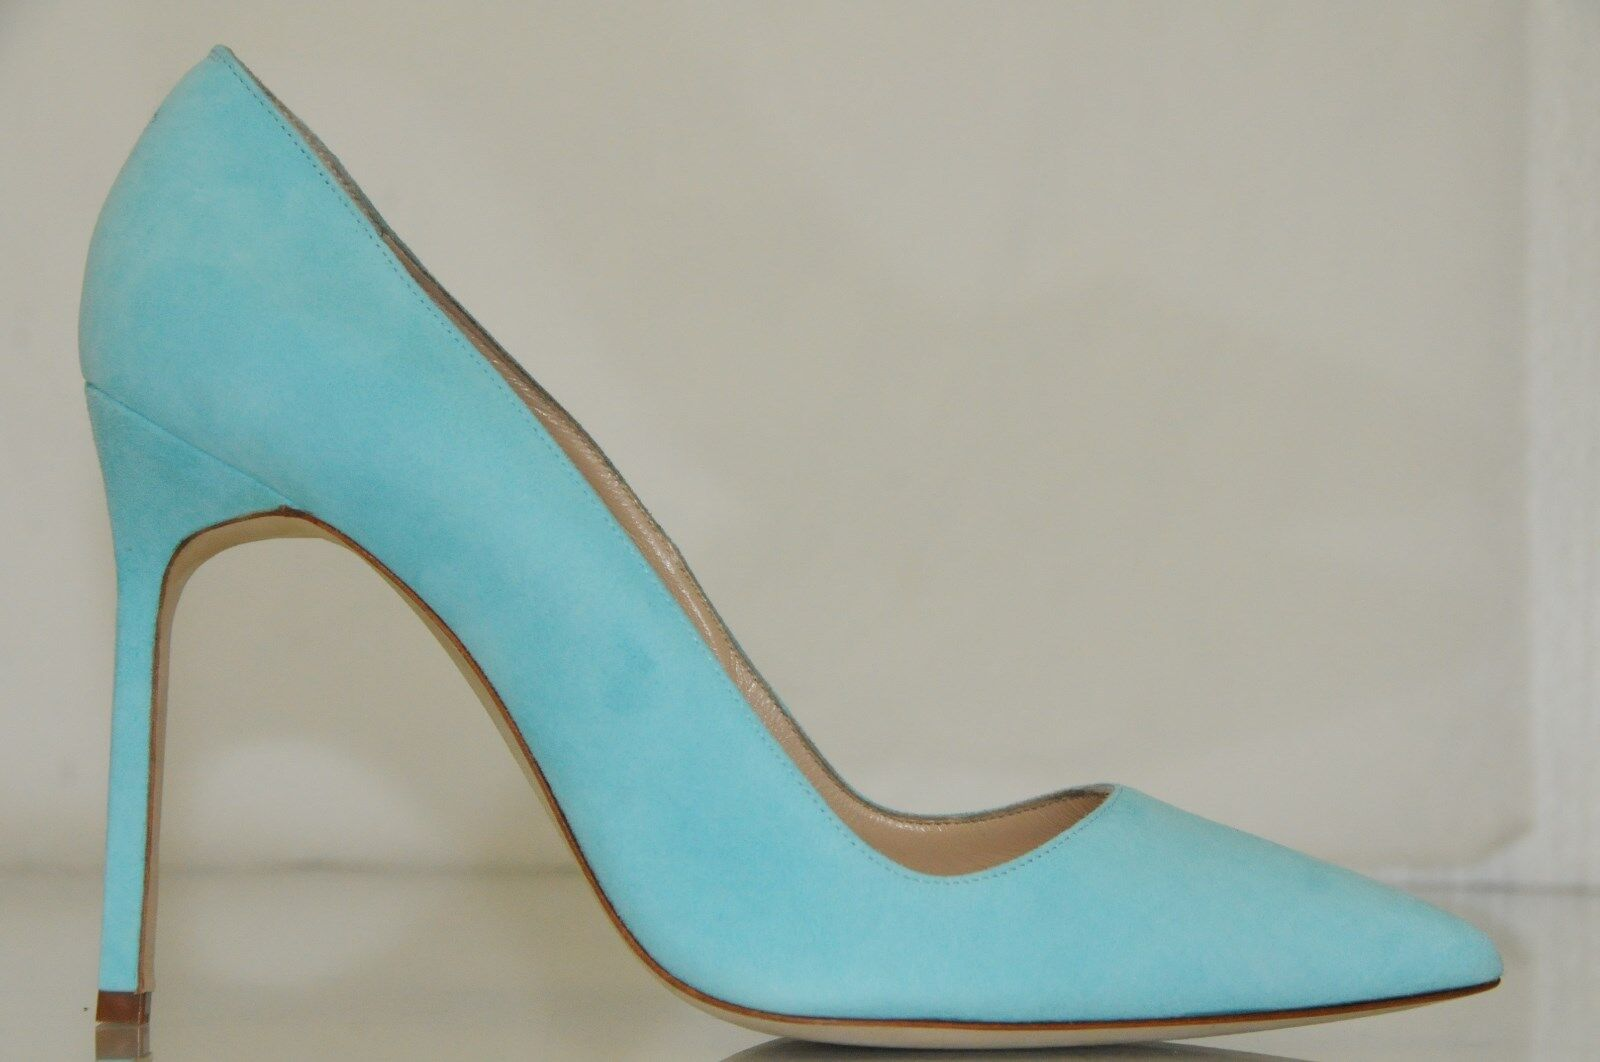 New Manolo Blahnik BB BB BB 105 Turquoise Suede chaussures Pumps 38 39 39.5 40 40.5 41 41.5 3b1bda